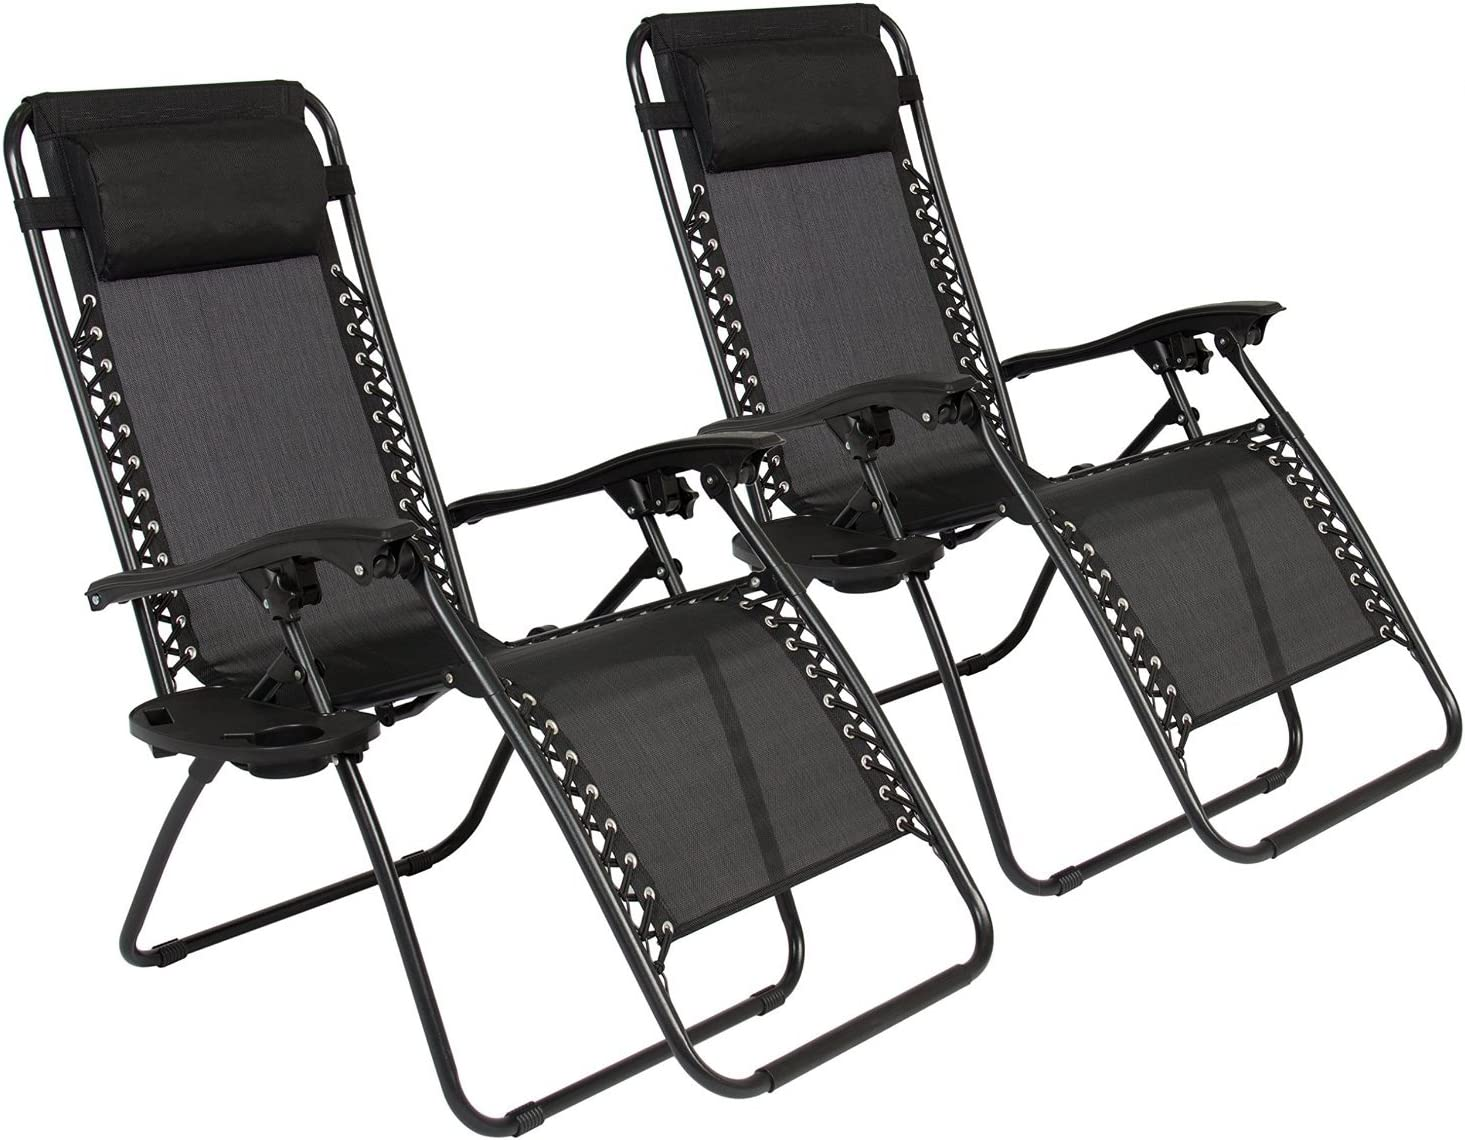 Oshion 1 Pair Zero Gravity Chairs Black Lounge Patio Chairs Outdoor Yard Beach New Black